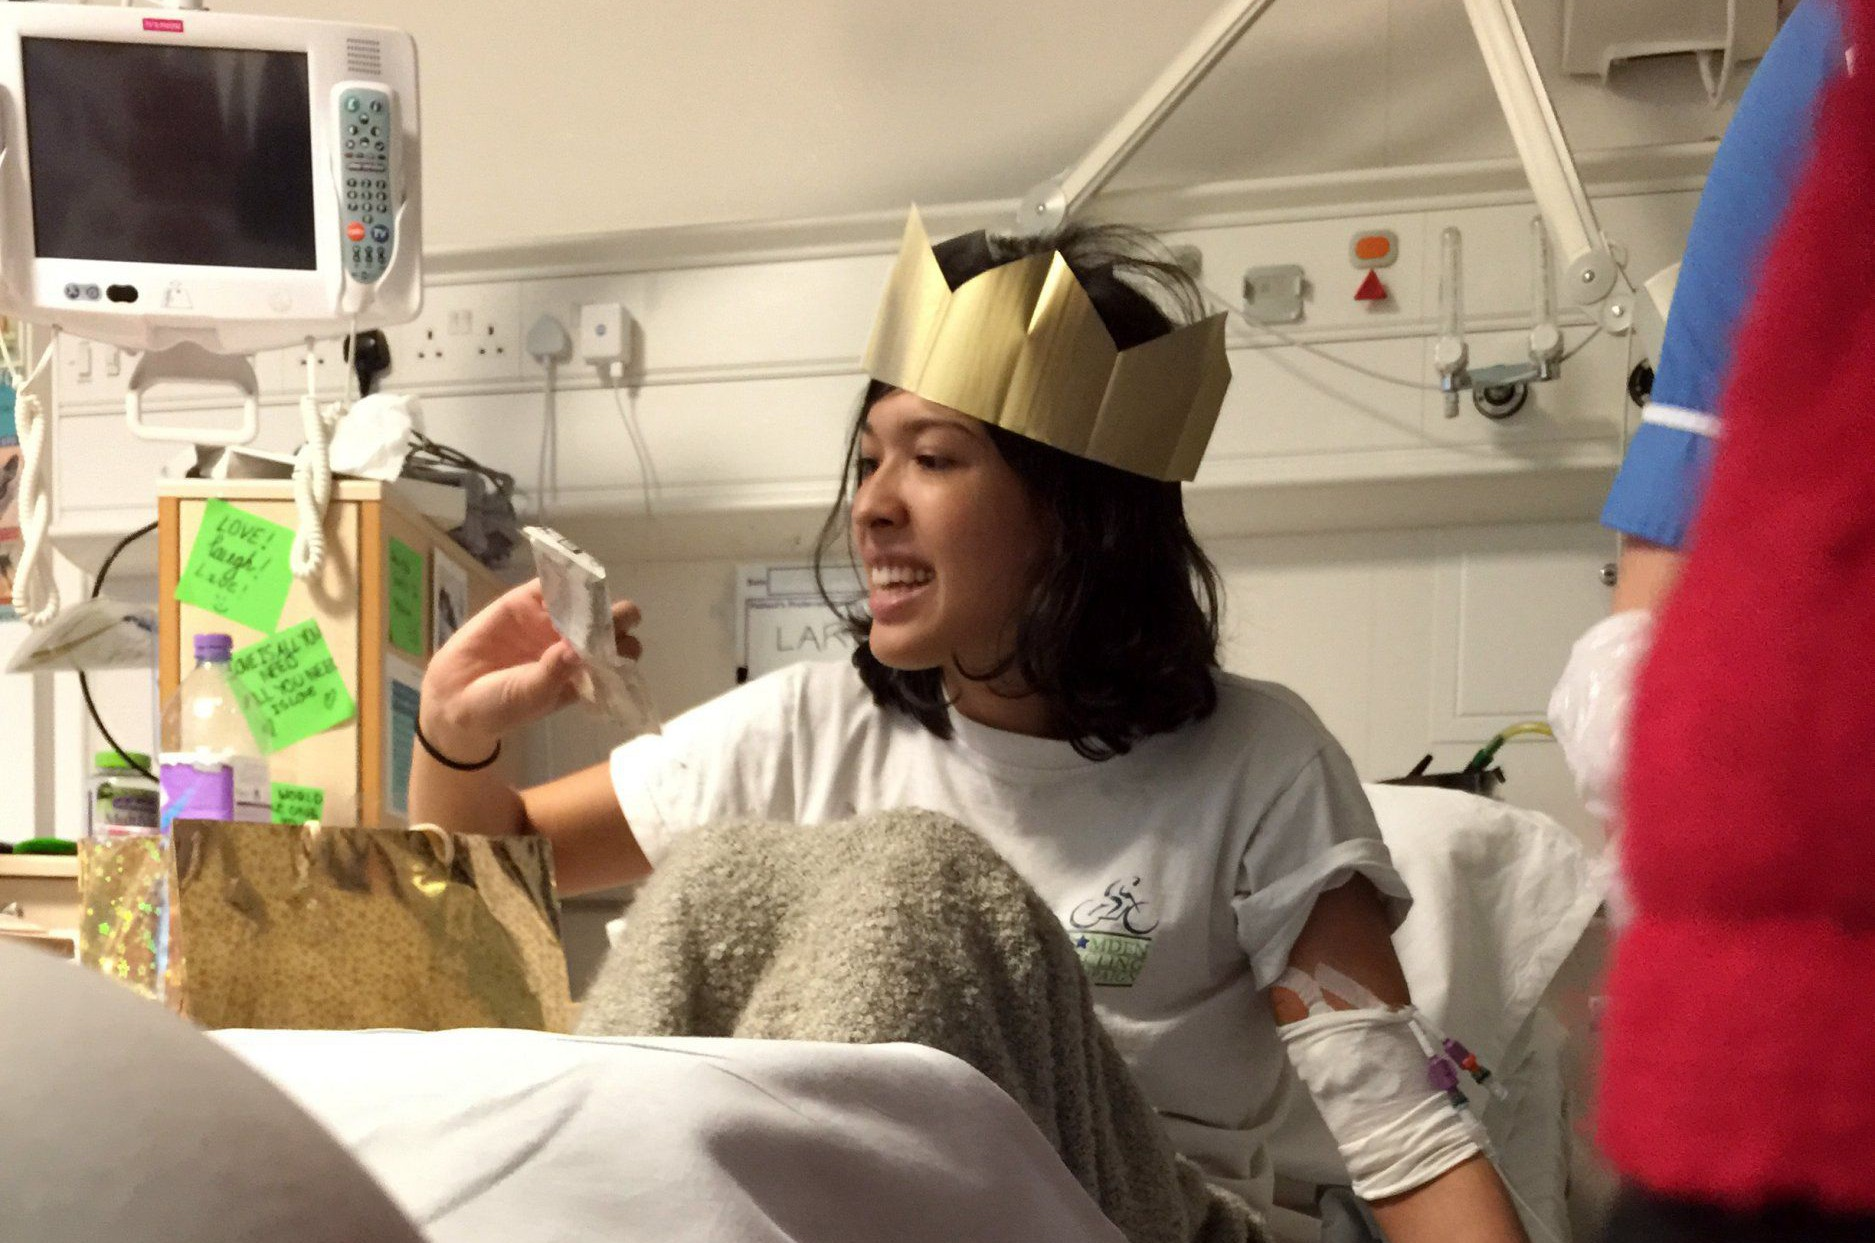 Embargoed to 0001 Tuesday February 9 Undated handout photo issued by Anthony Nolan of Lara Casalotti spending Christmas in hospital, as the mixed-race student diagnosed with an aggressive form of leukaemia has found a stem cell donor against the odds. PRESS ASSOCIATION Photo. Issue date: Tuesday February 9, 2016. She was diagnosed with acute myeloid leukaemia in December during a trip to Thailand and told her best hope of a cure was a stem cell transplant. See PA story HEALTH Lara. Photo credit should read: Anthony Nolan/PA Wire NOTE TO EDITORS: This handout photo may only be used in for editorial reporting purposes for the contemporaneous illustration of events, things or the people in the image or facts mentioned in the caption. Reuse of the picture may require further permission from the copyright holder.